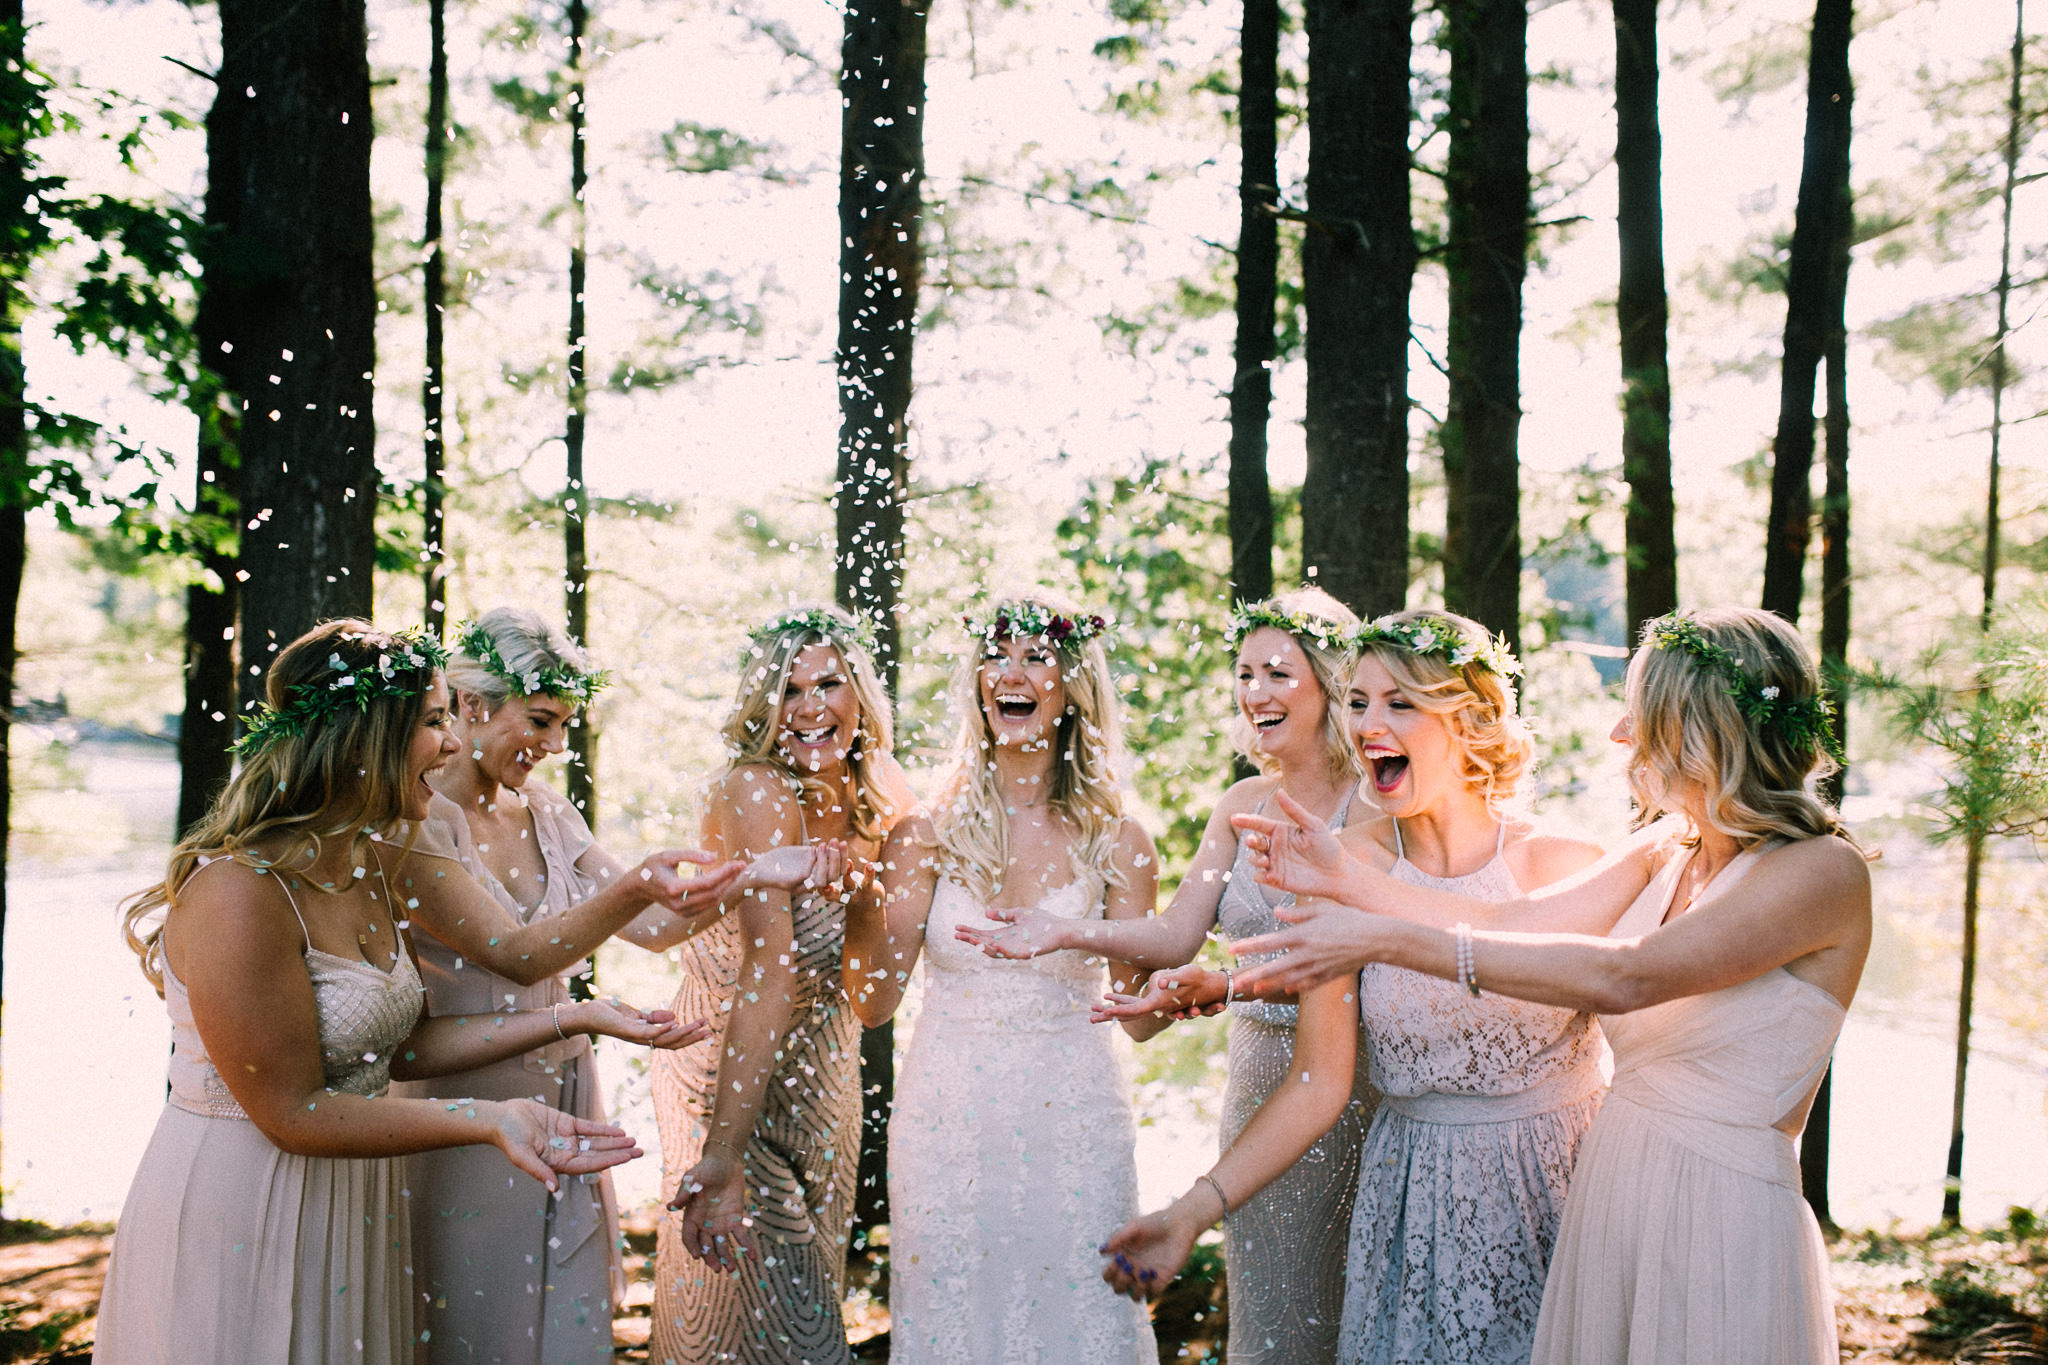 Muskoka lakeside wedding at Port Cunnington Lodge by Max Wong Photo (37)